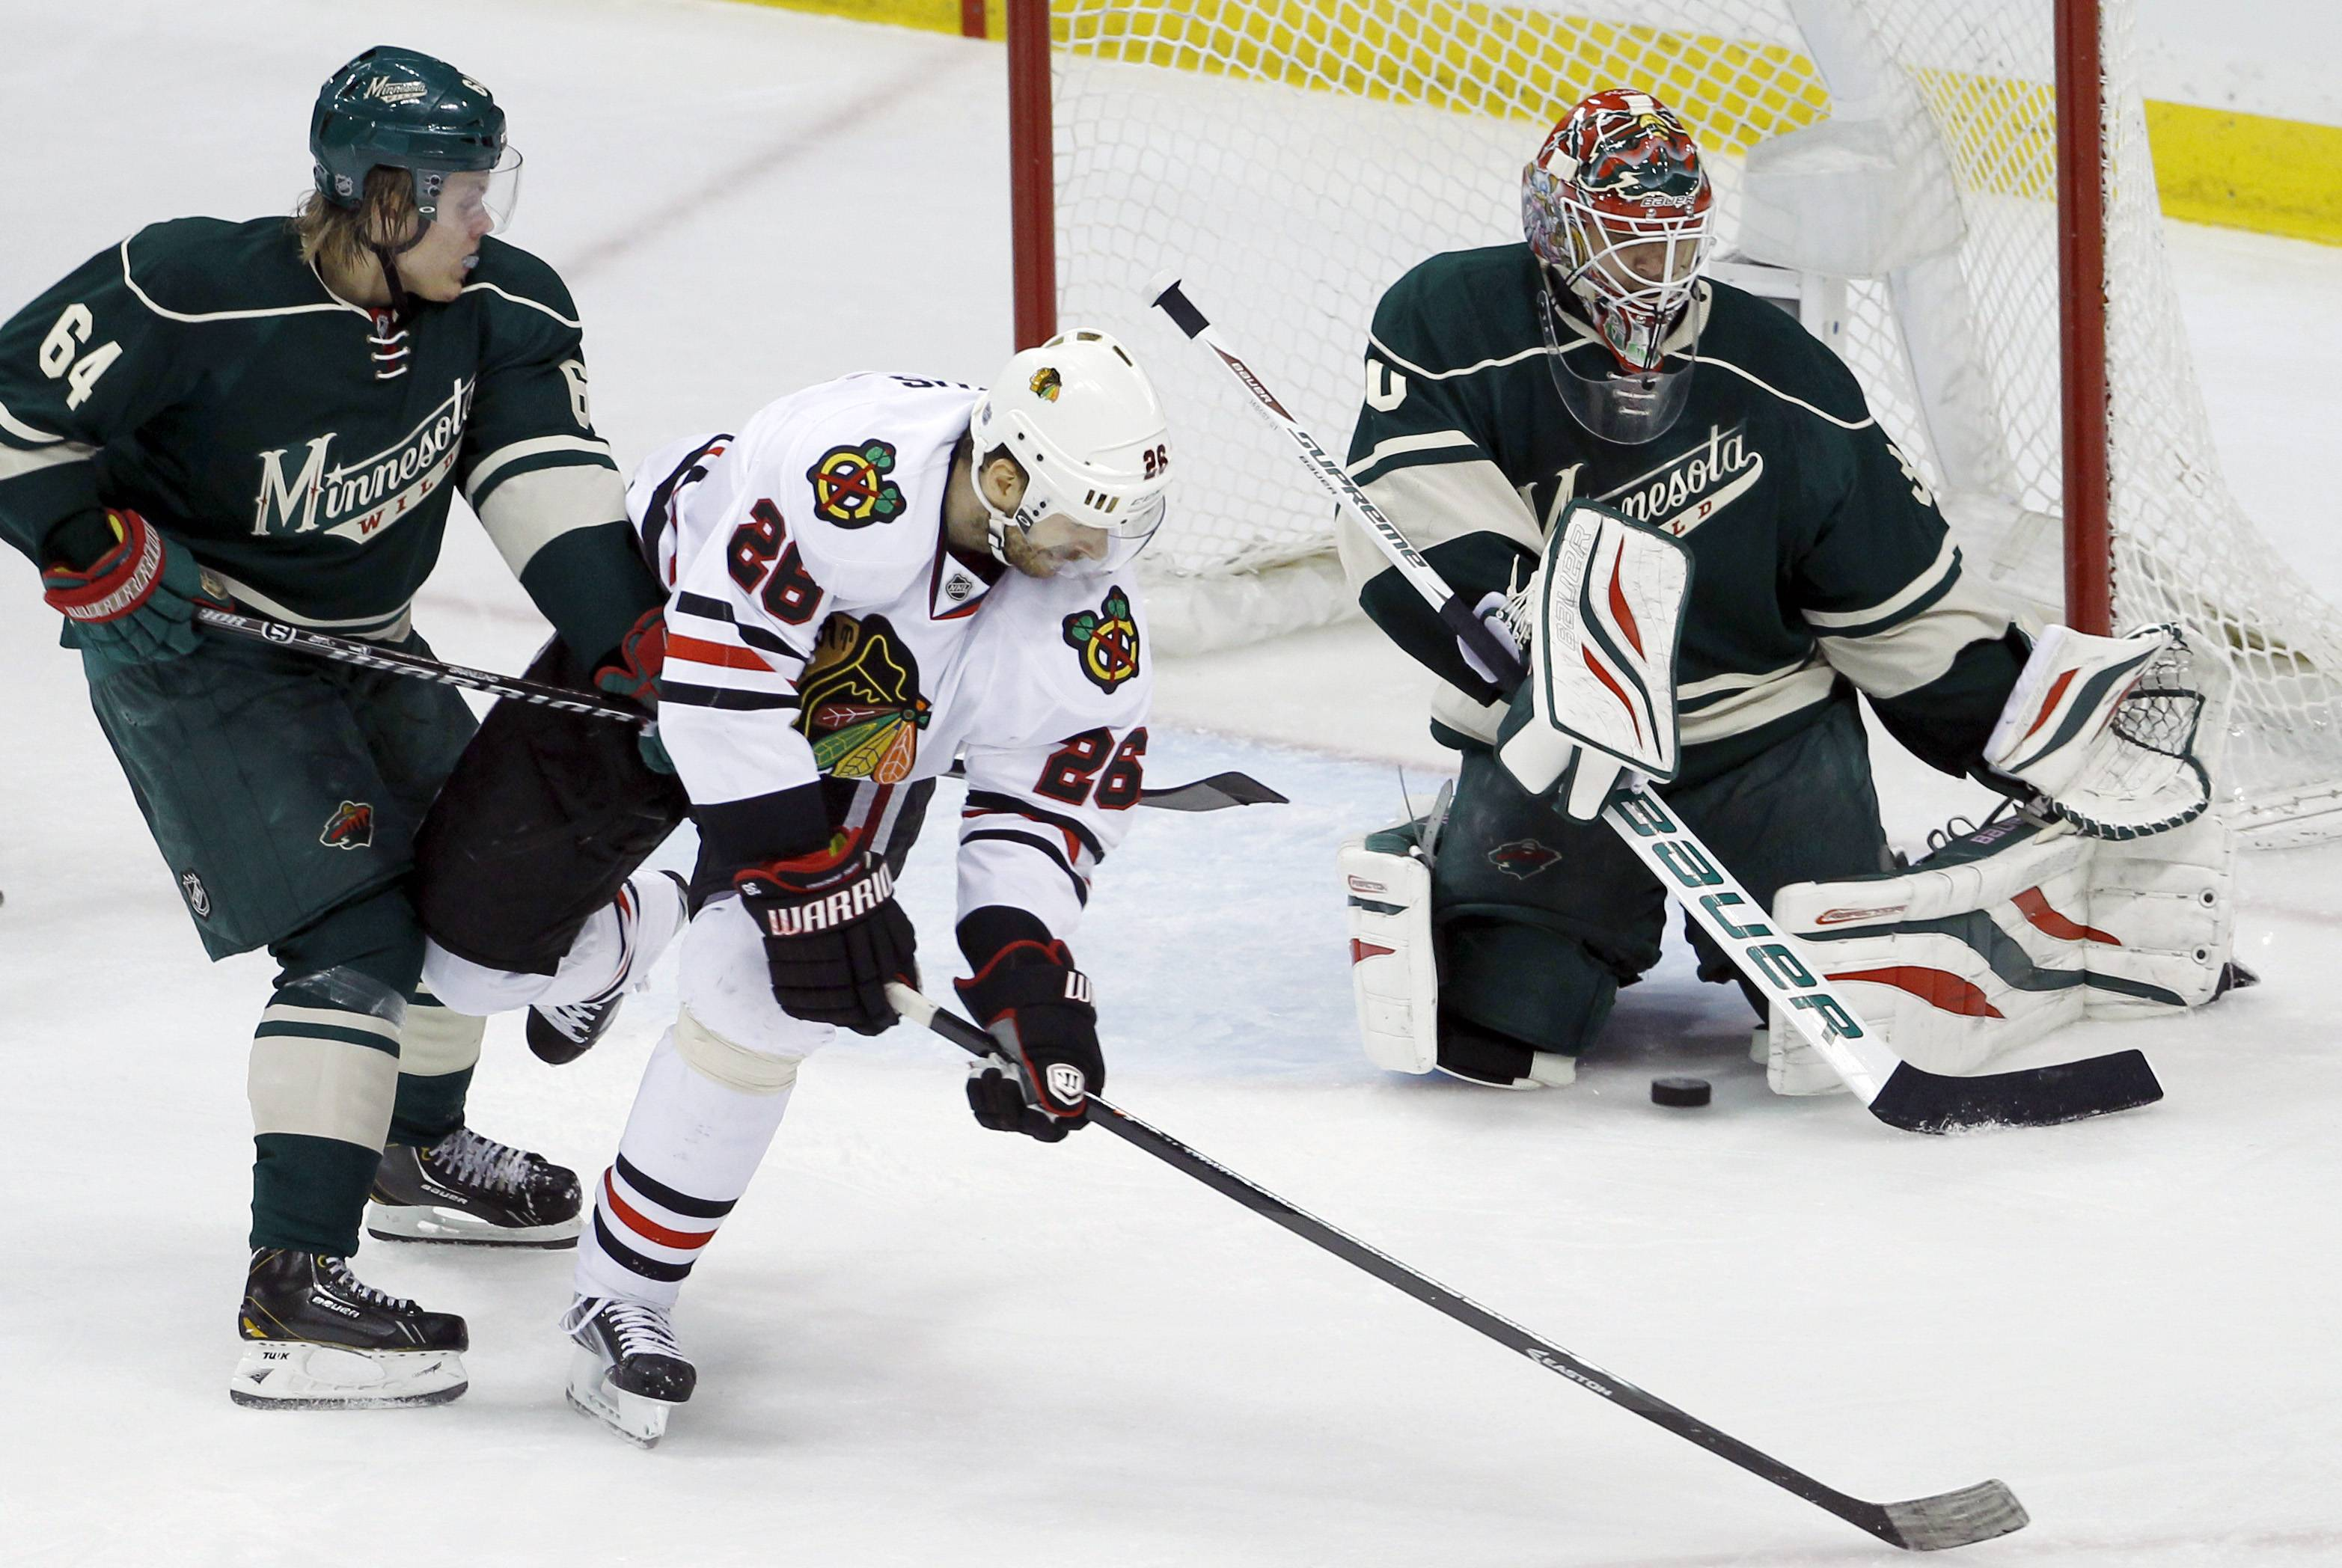 Chicago Blackhawks center Michal Handzus (26), of Czech Republic, gets a shot through the legs of Minnesota Wild goalie Ilya Bryzgalov, right, of Russia, to score in front of Wild center Mikael Granlund (64), of Finland, during the second period.